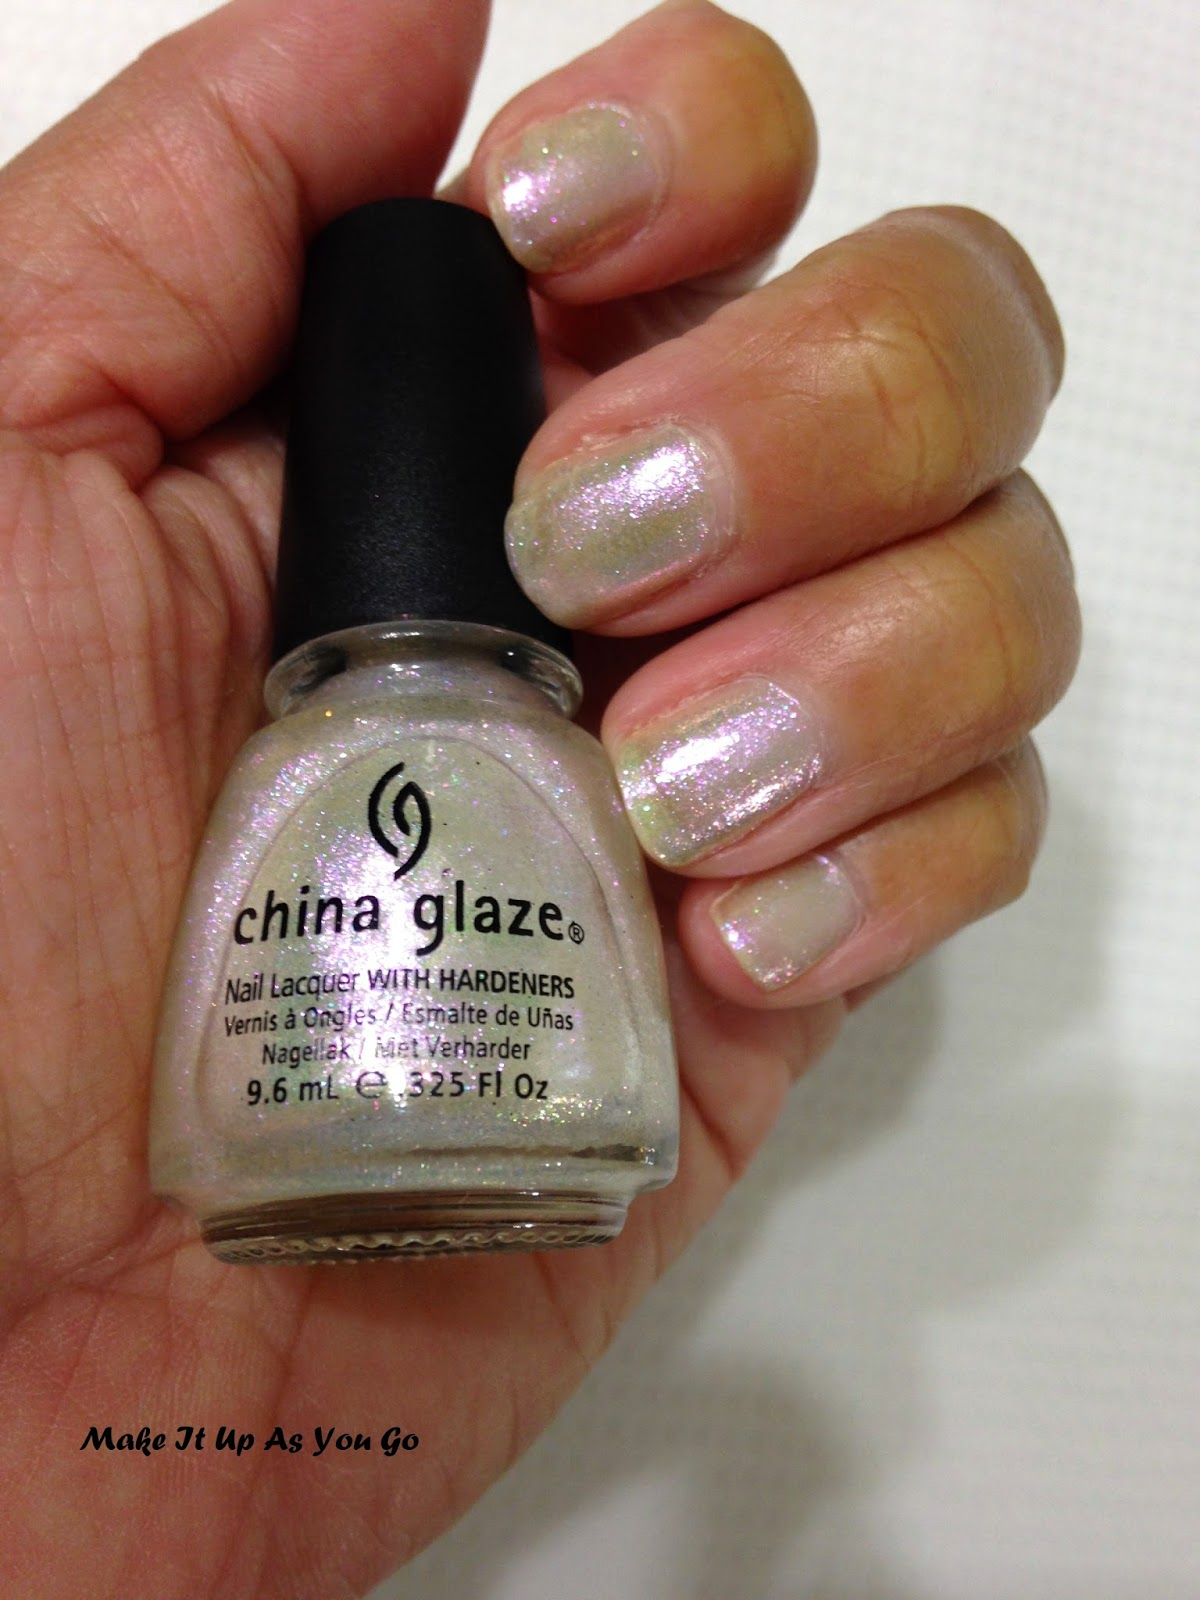 The China Glaze Hy Holiglaze Collection Features 12 New Polishes And One Color Traveling Top Coat